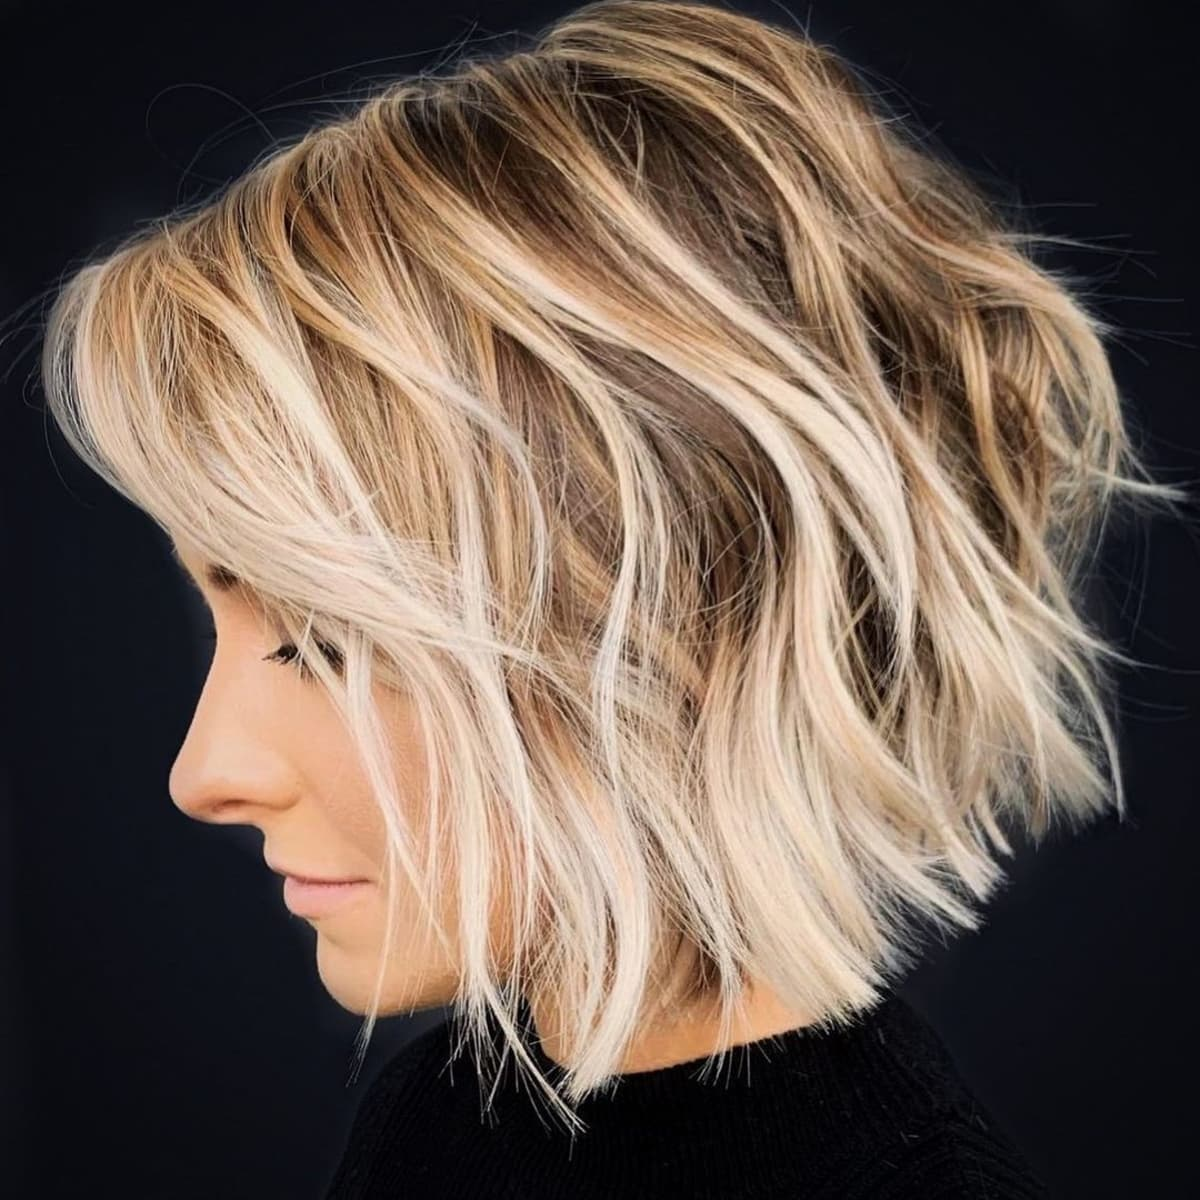 The best short wavy haircut with texture